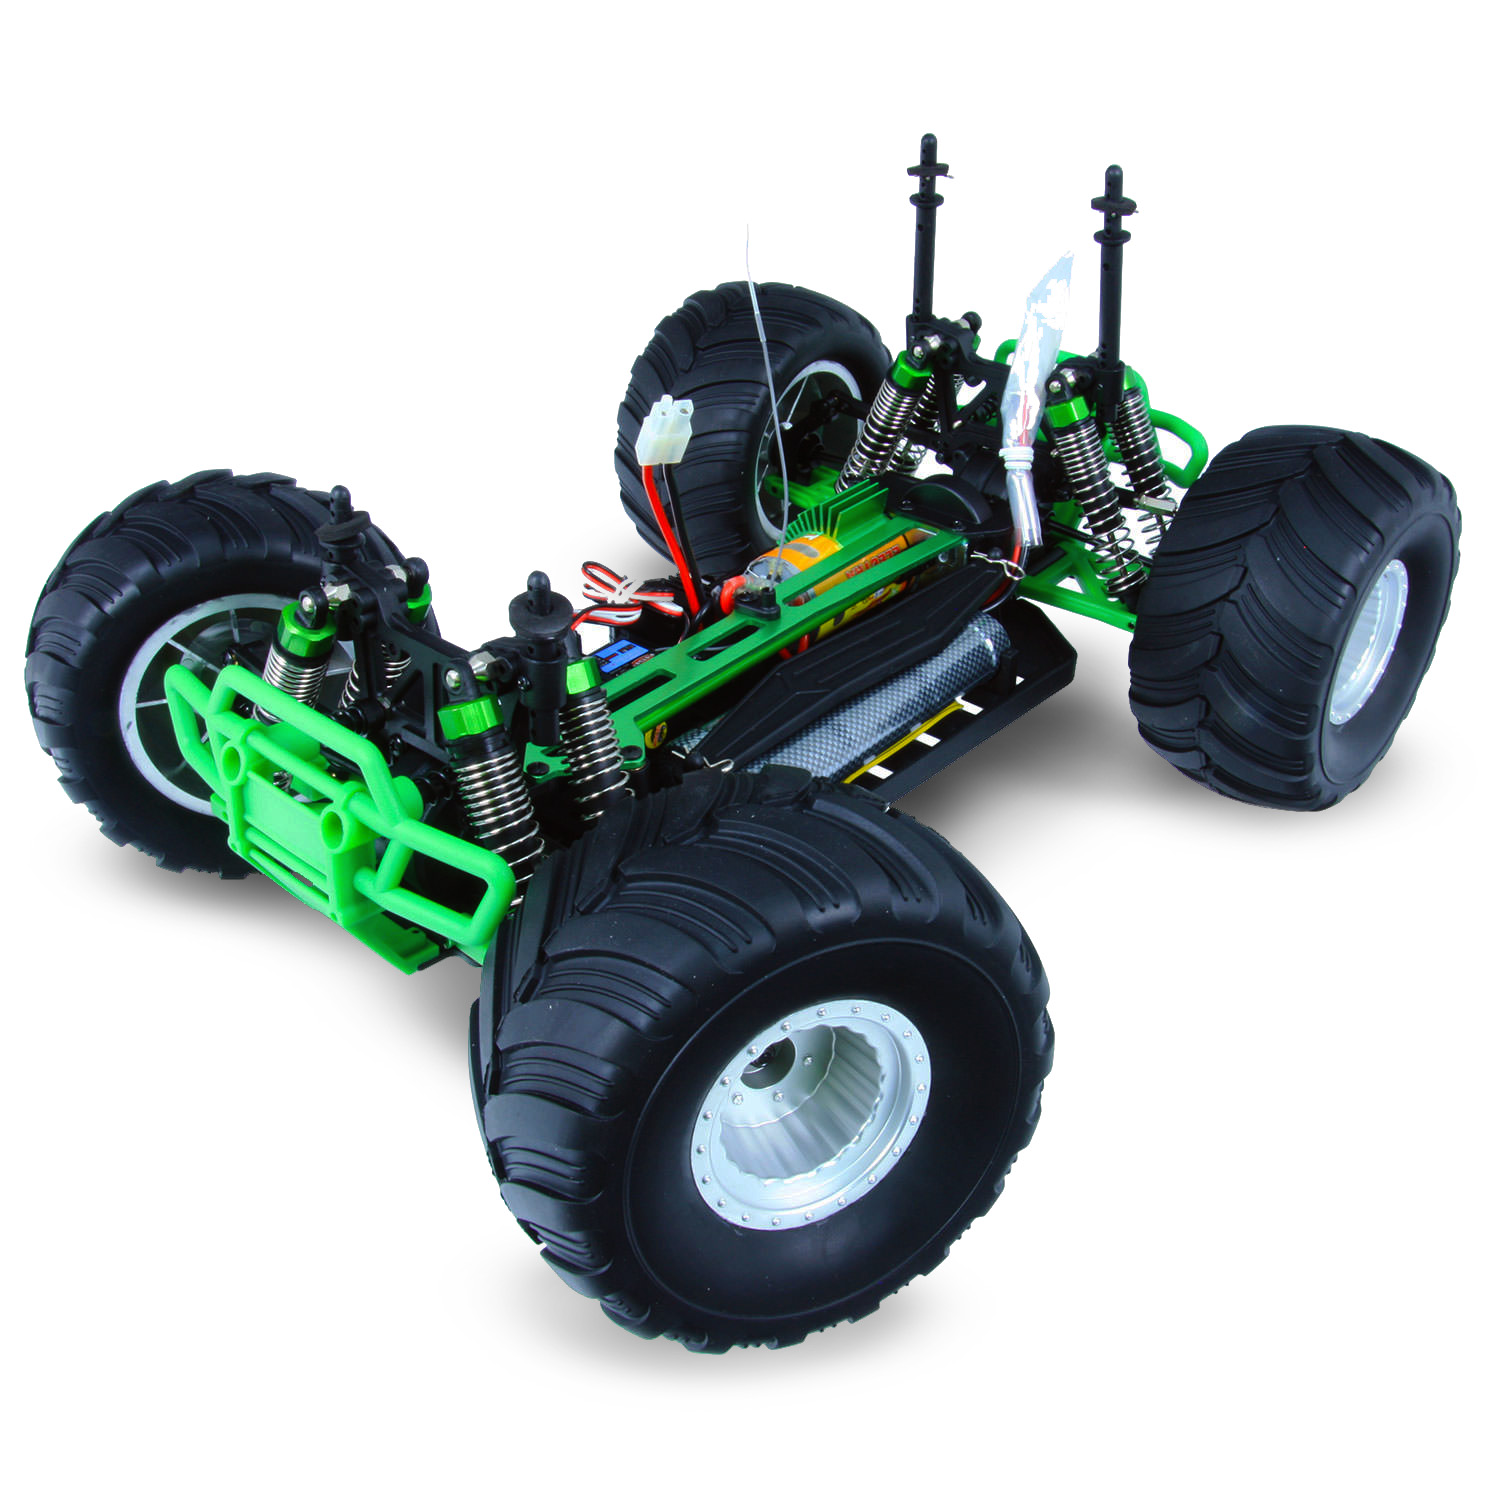 Hsp Monster Truck Special Edition Green Rc Truck At Hobby